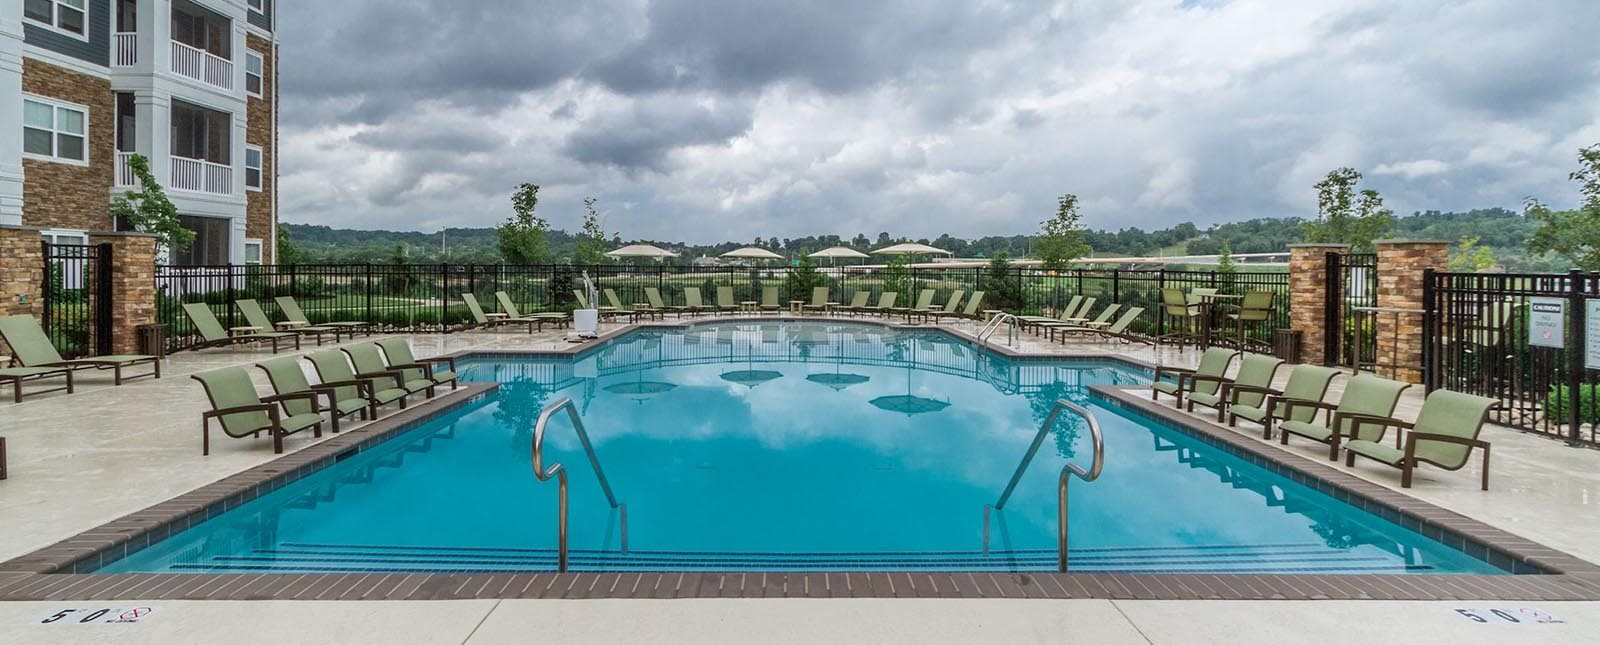 Pool lounge view of The Haven luxury apartments in Malvern, PA